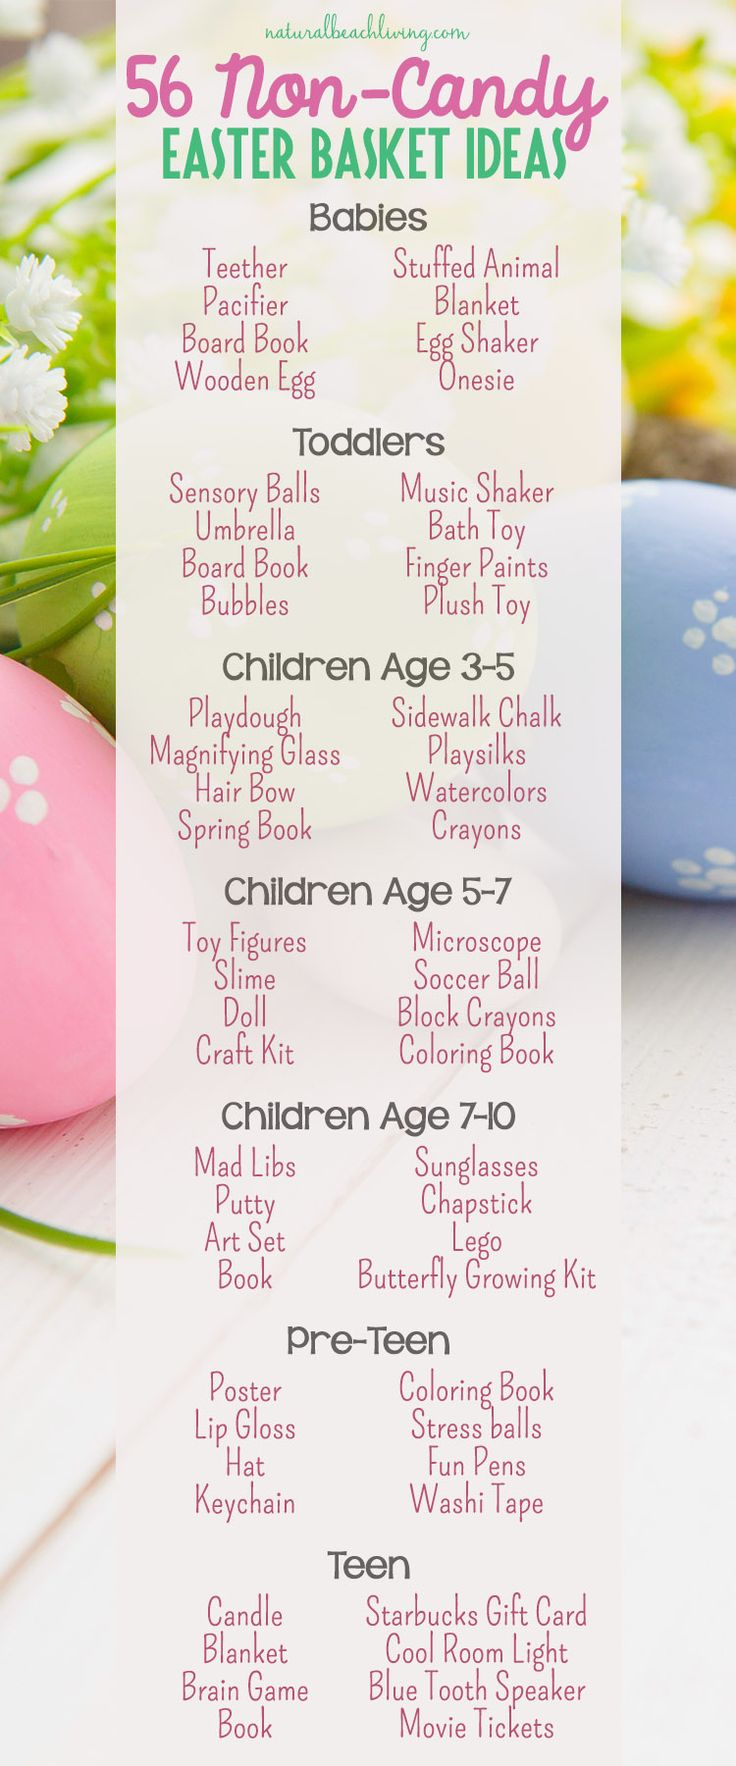 The 25 best easter baskets ideas on pinterest easter ideas 56 non candy easter basket ideas for kids negle